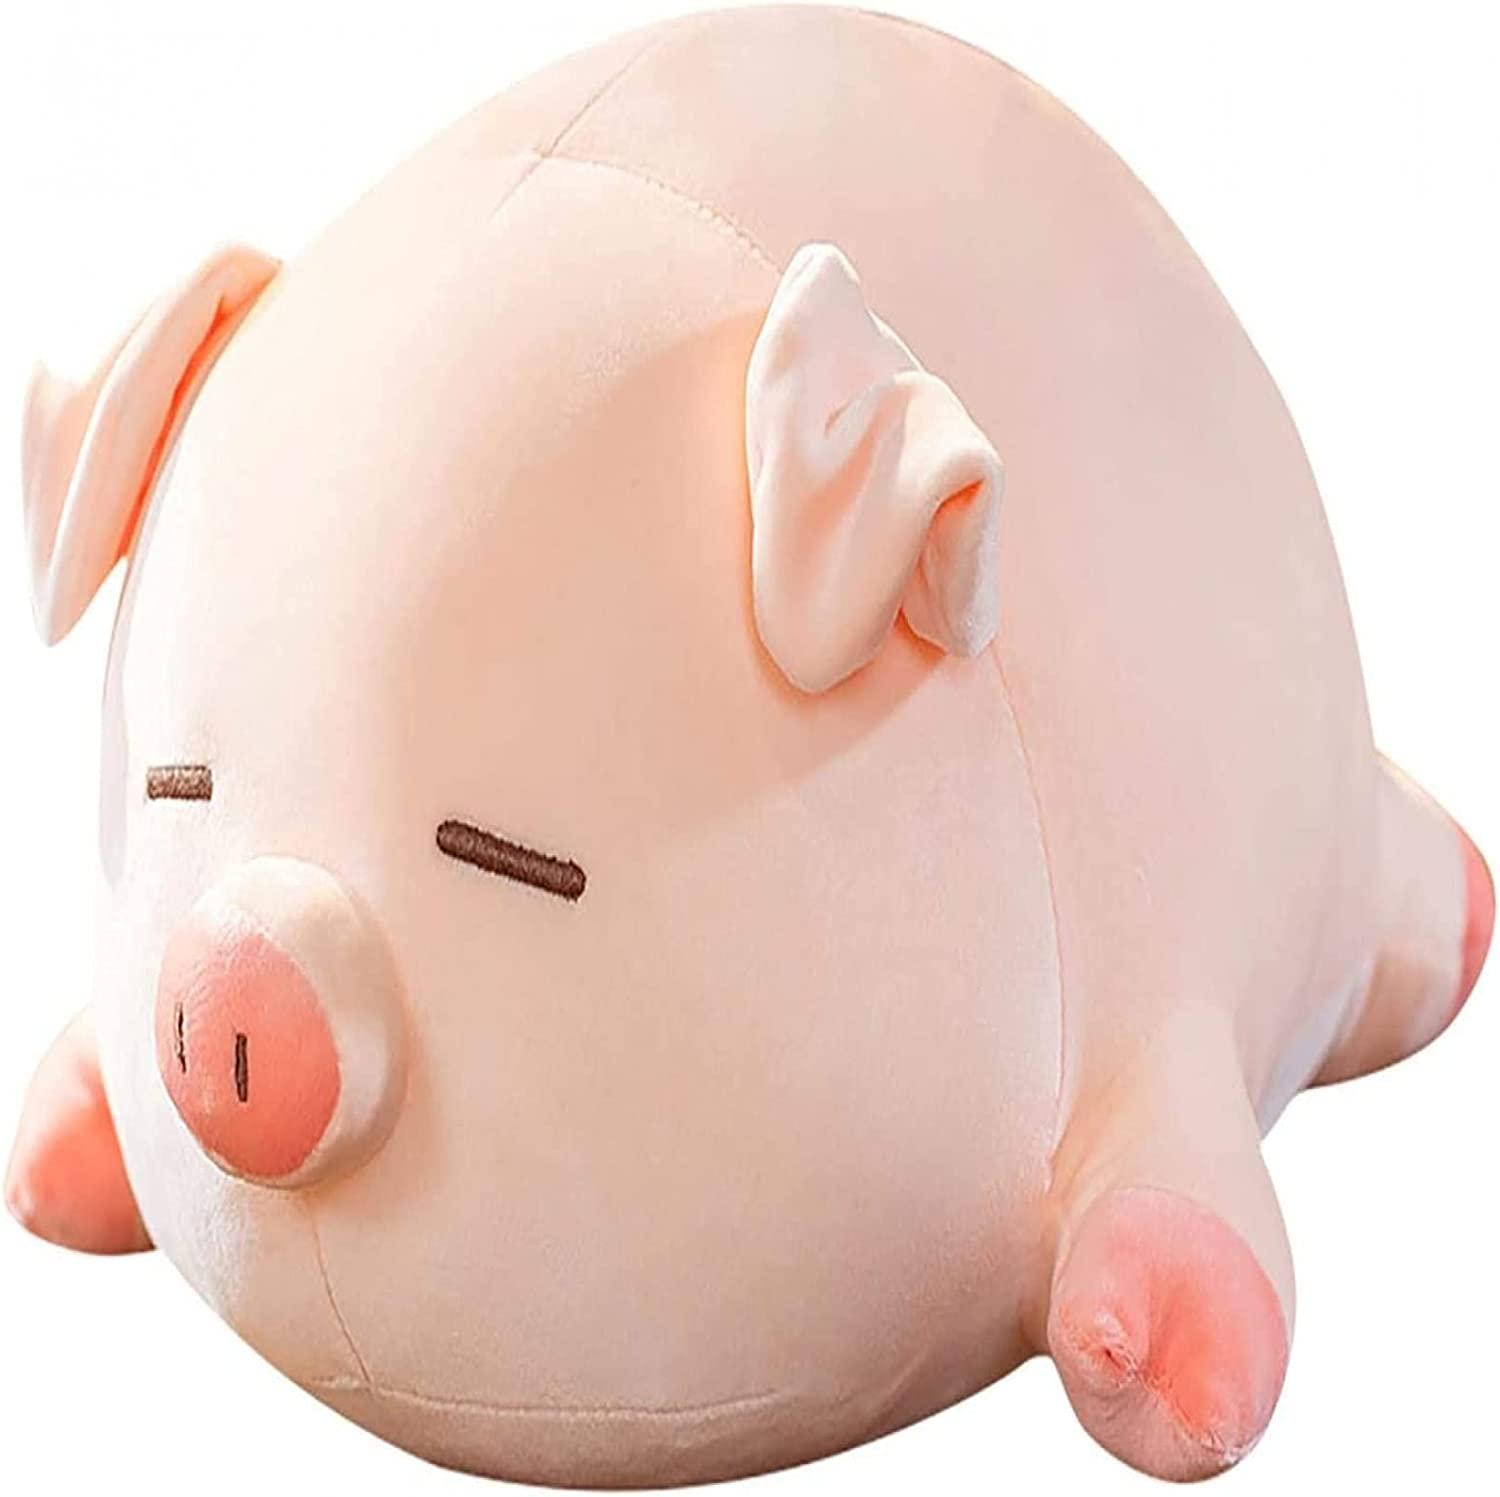 Plush Toys Cute 25% OFF Pig Shape Very popular! with Filled and S Comfortable